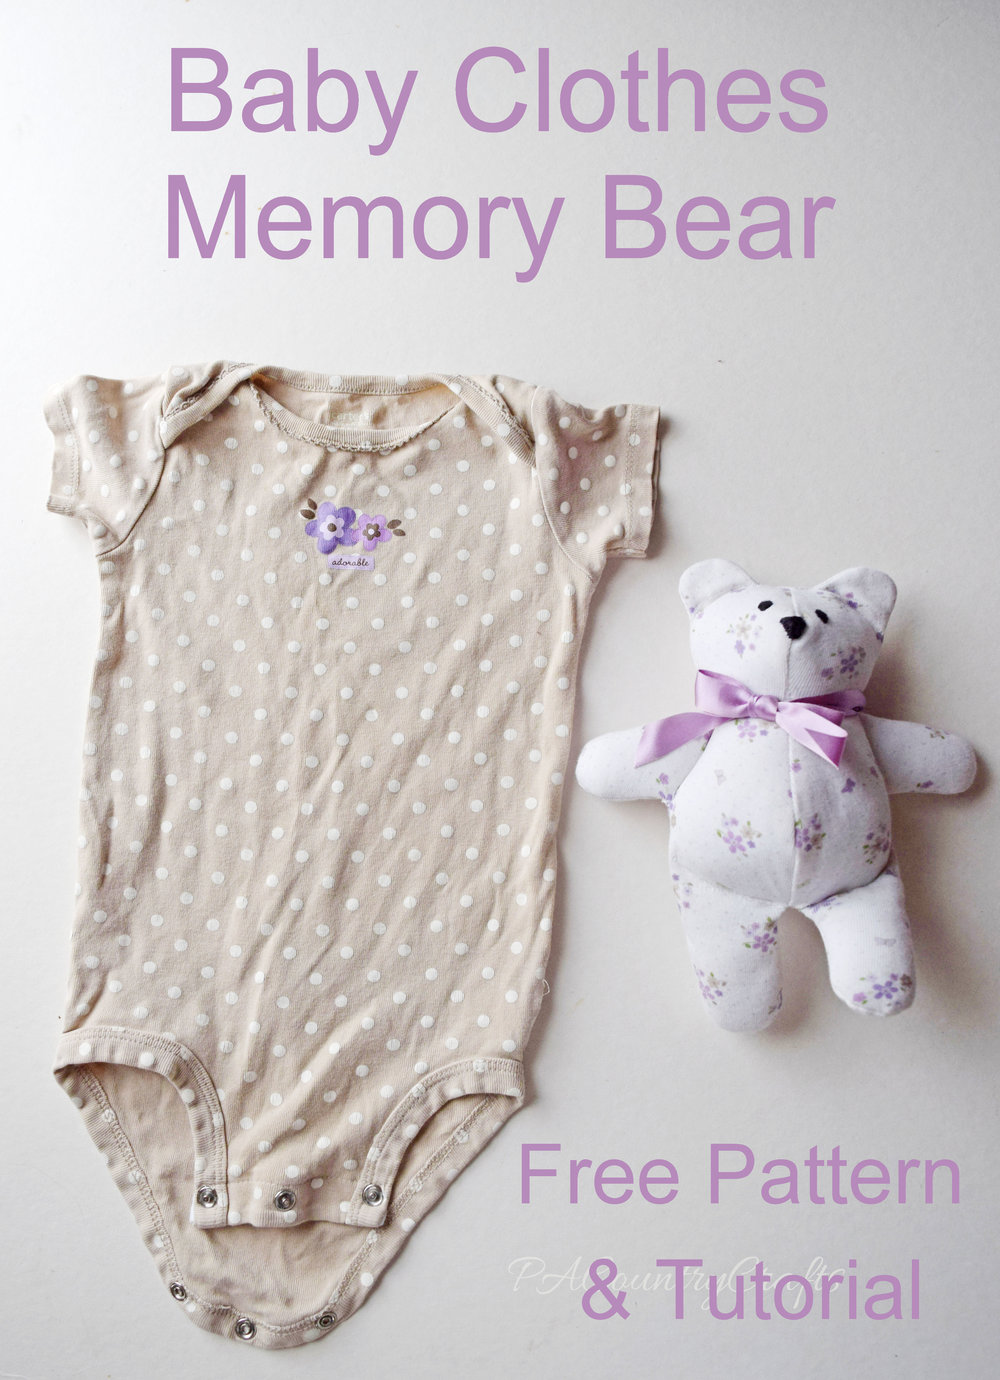 photograph regarding Free Printable Teddy Bear Patterns named Child Outfits Memory Undertake Practice and Guide PACountryCrafts